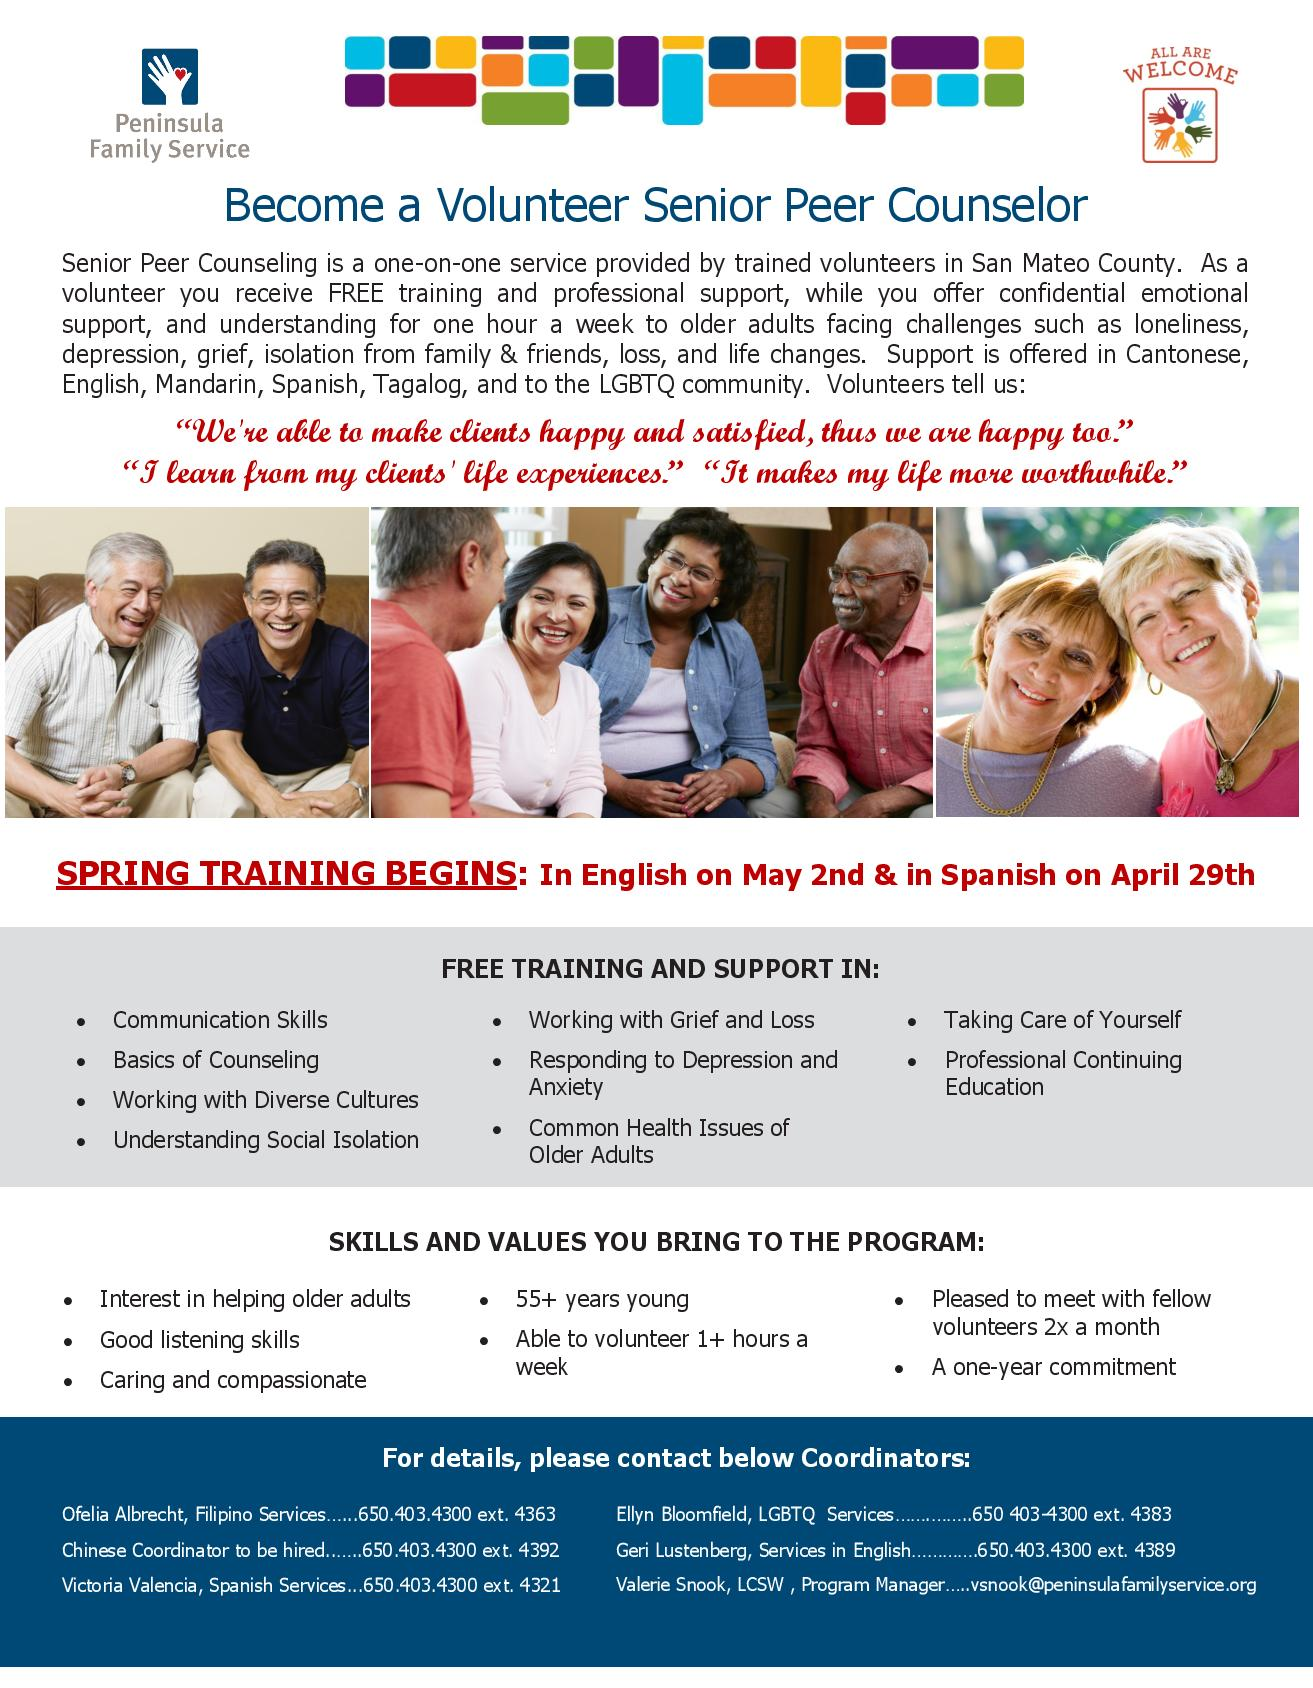 Senior Peer Counselors Sought by Peninsula Family Services